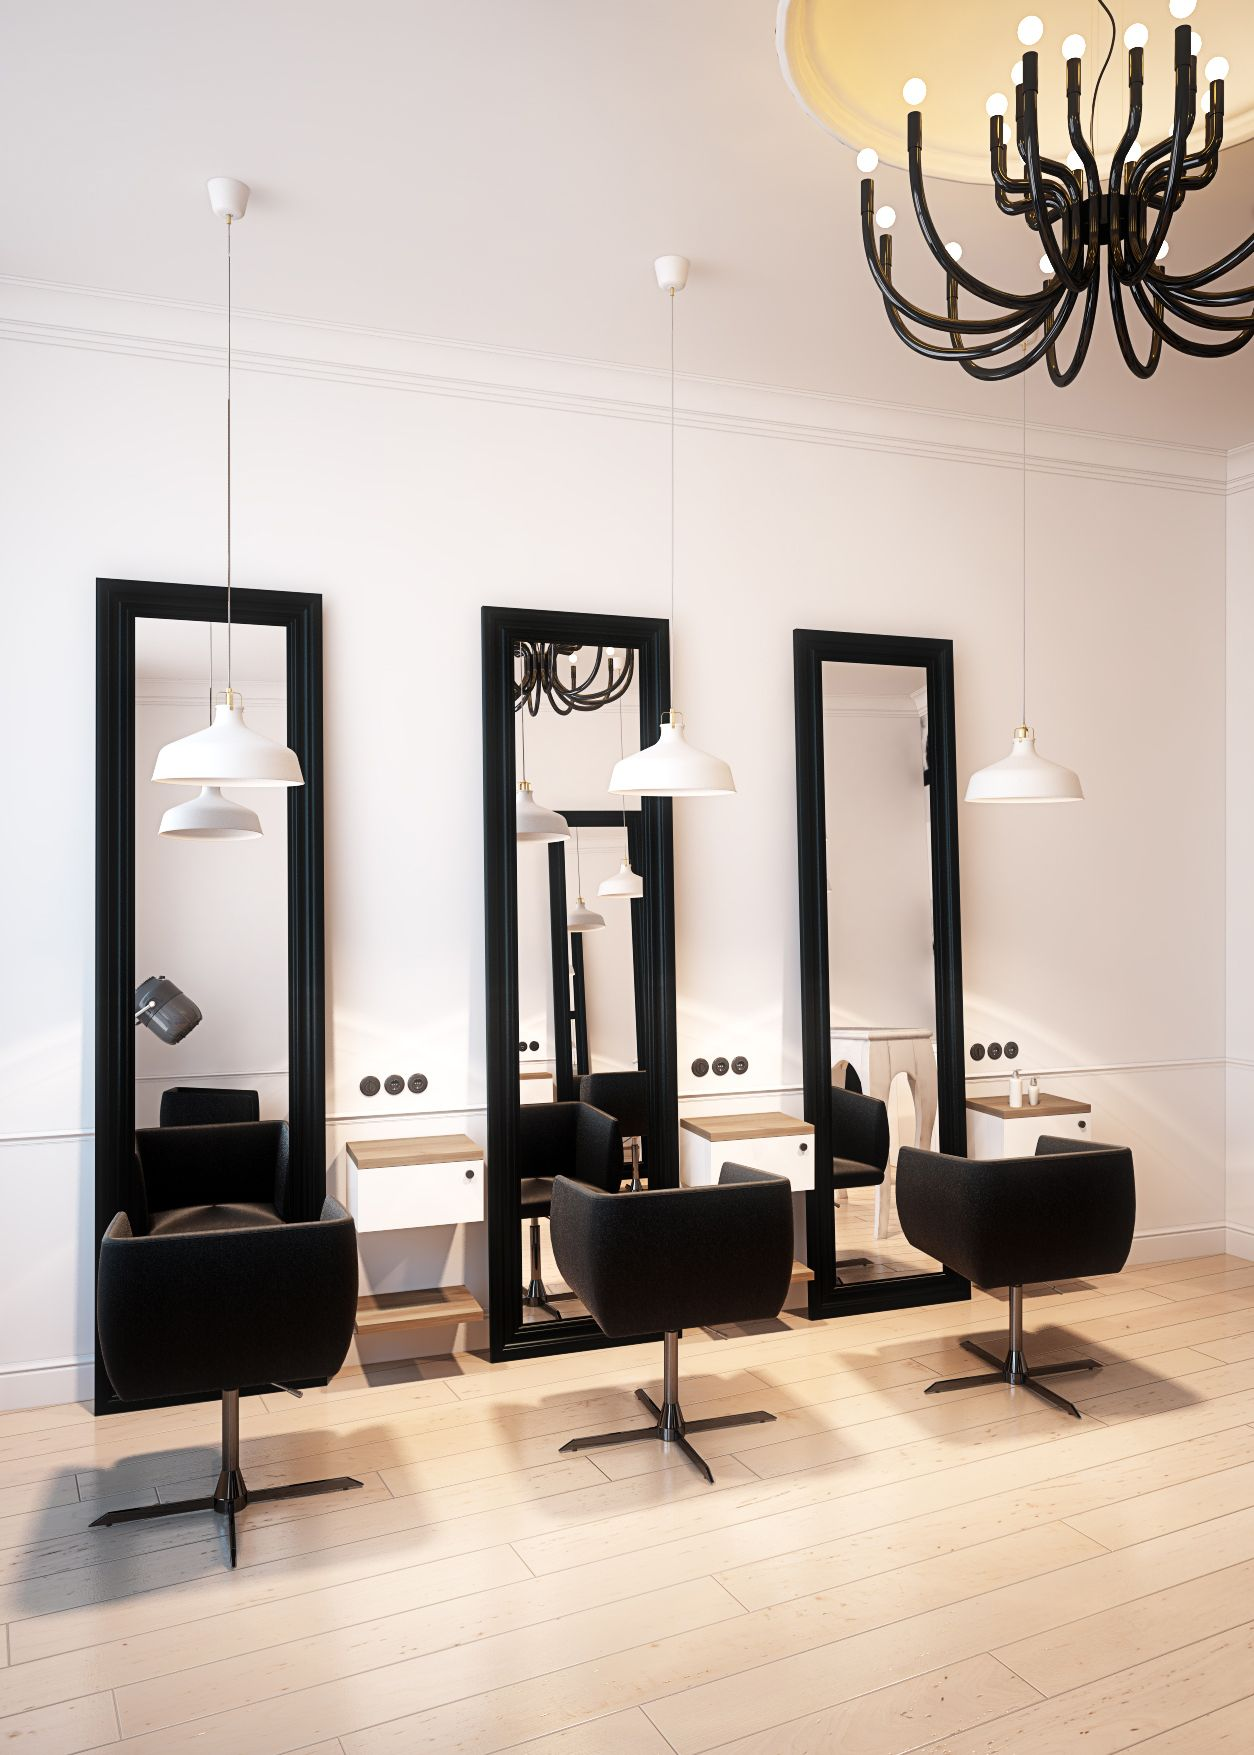 Salon Architecture Hairdresser Interior Design In Bytom Poland Archi Group